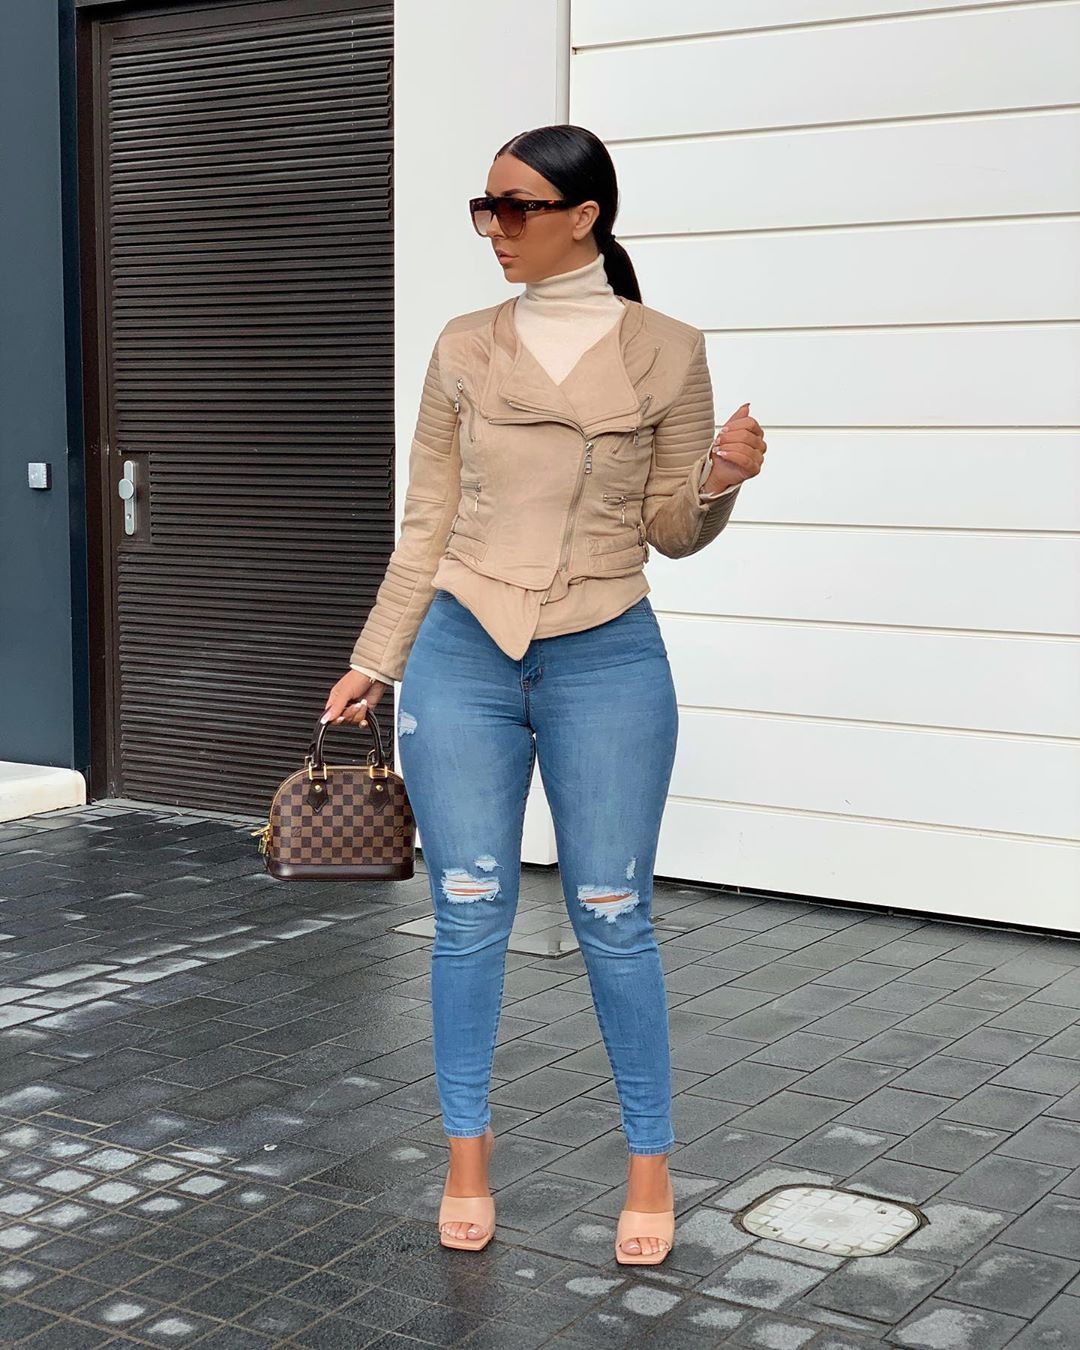 Brown and white denim, jeans, outfit designs